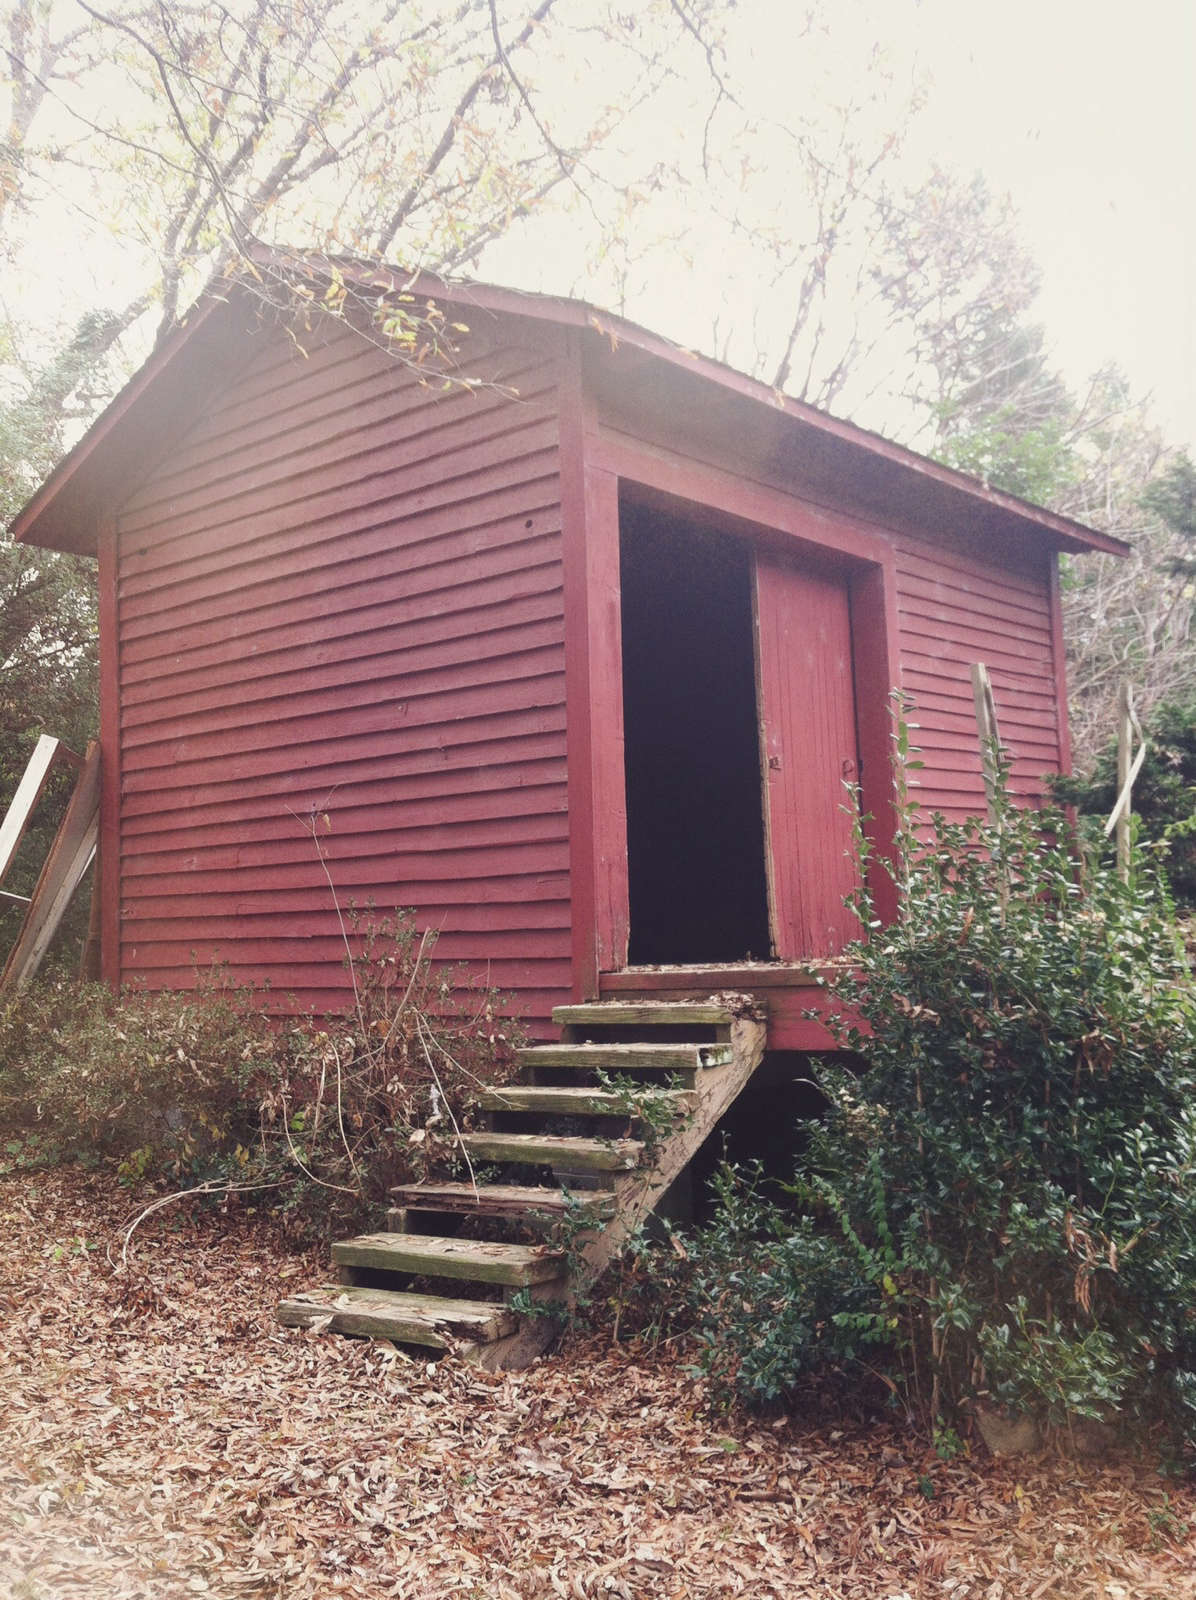 ^ Outbuilding of the Week: iny ailroad Shed ransformed into a ...